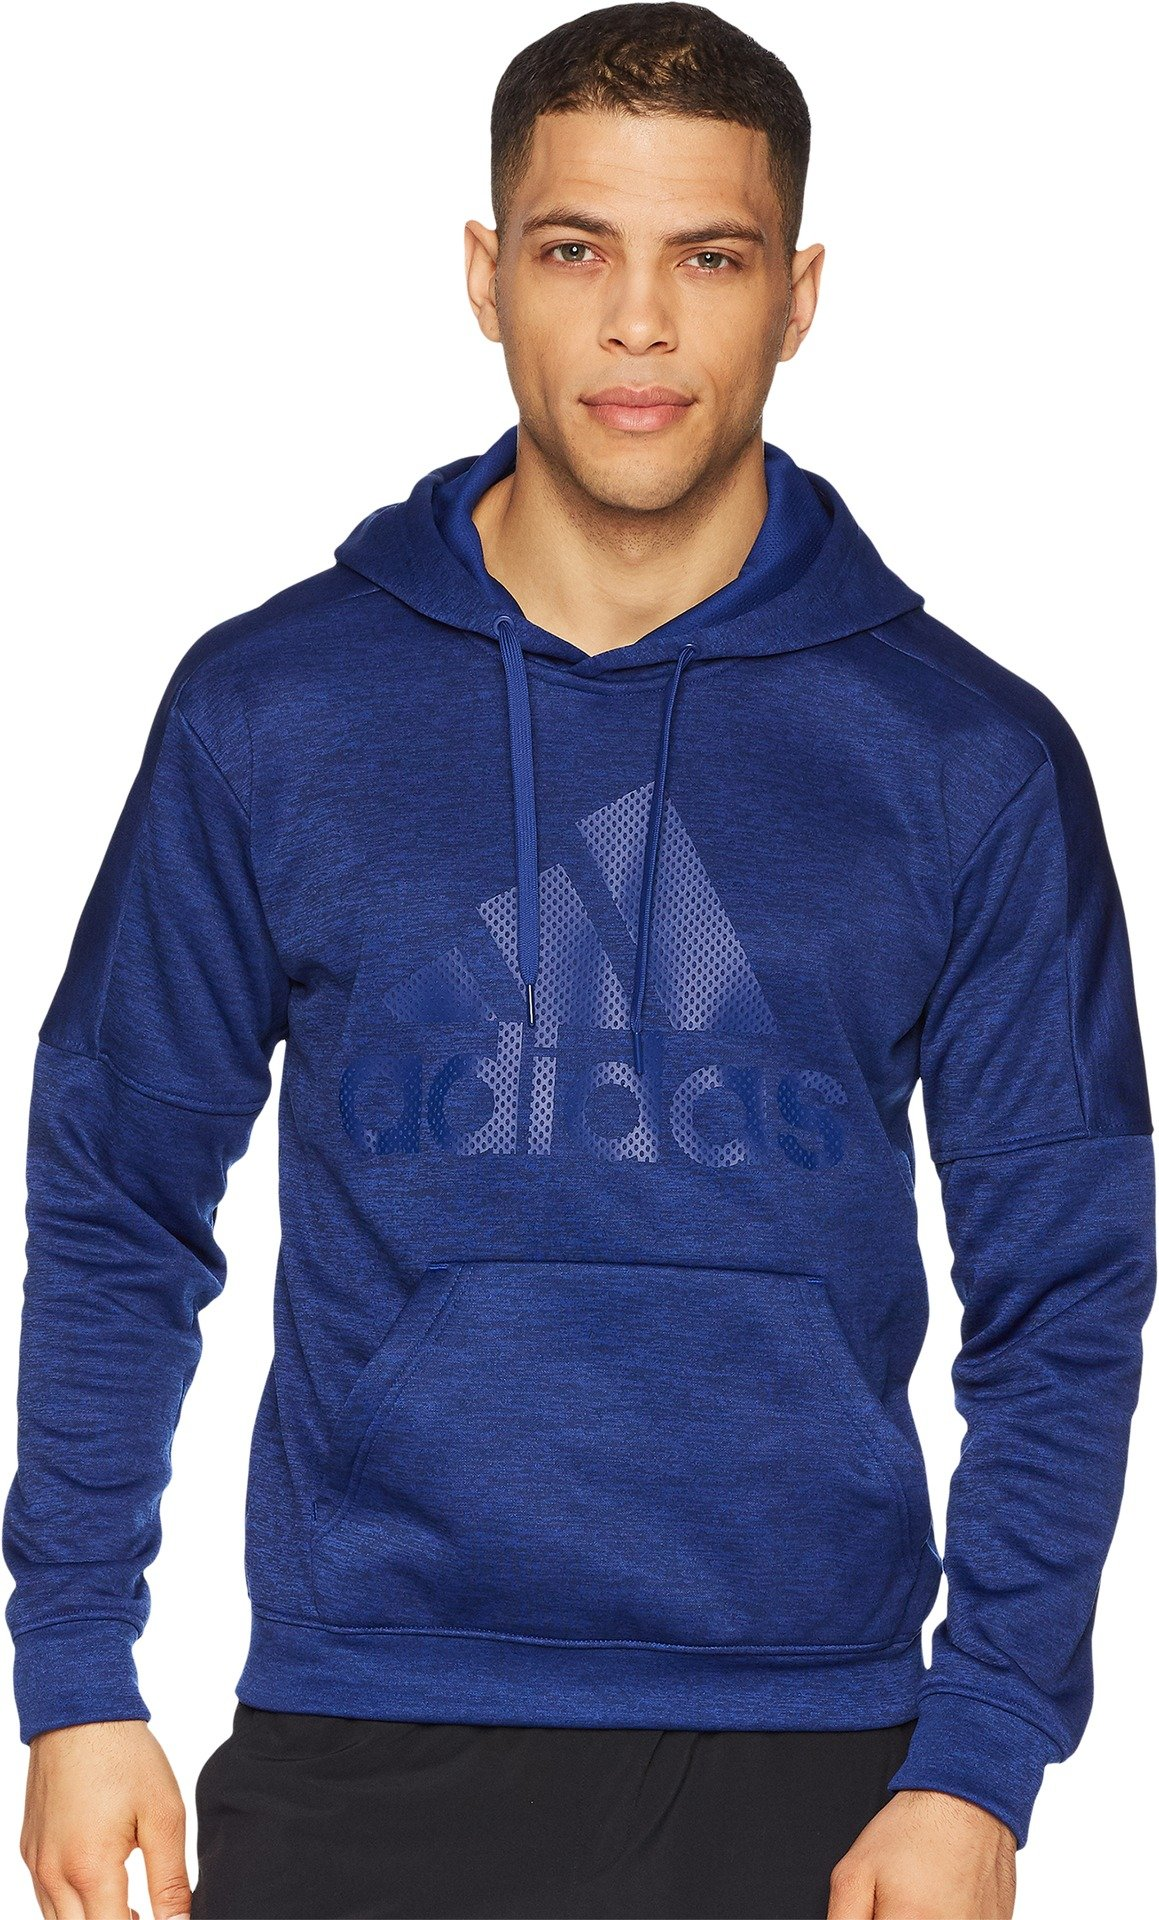 adidas Men's Athletics Team Issue Fleece Logo Pull Over Hoody, Mystery Ink Melange/Mystery Ink Melange/Mystery Ink, Medium